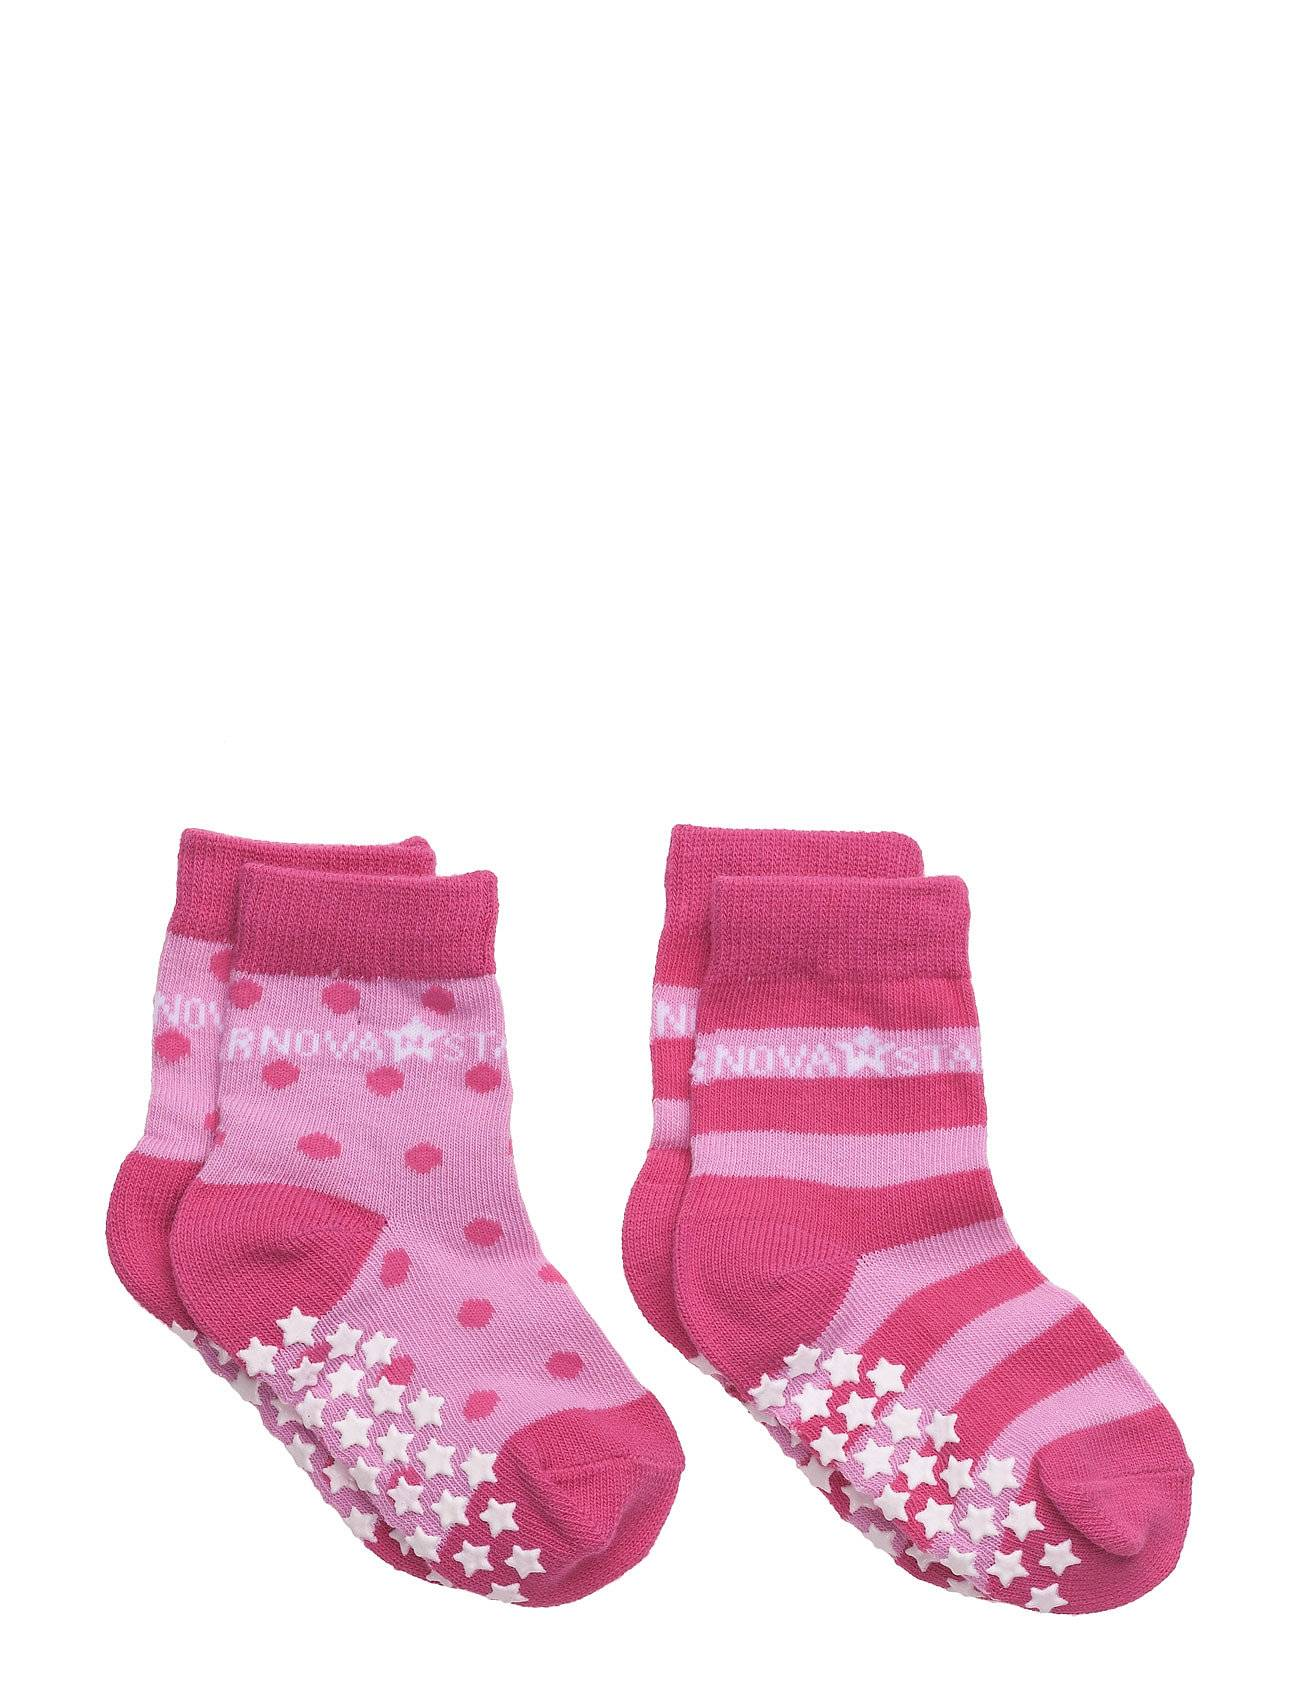 NOVA STAR Anti-Slip Pink Socks